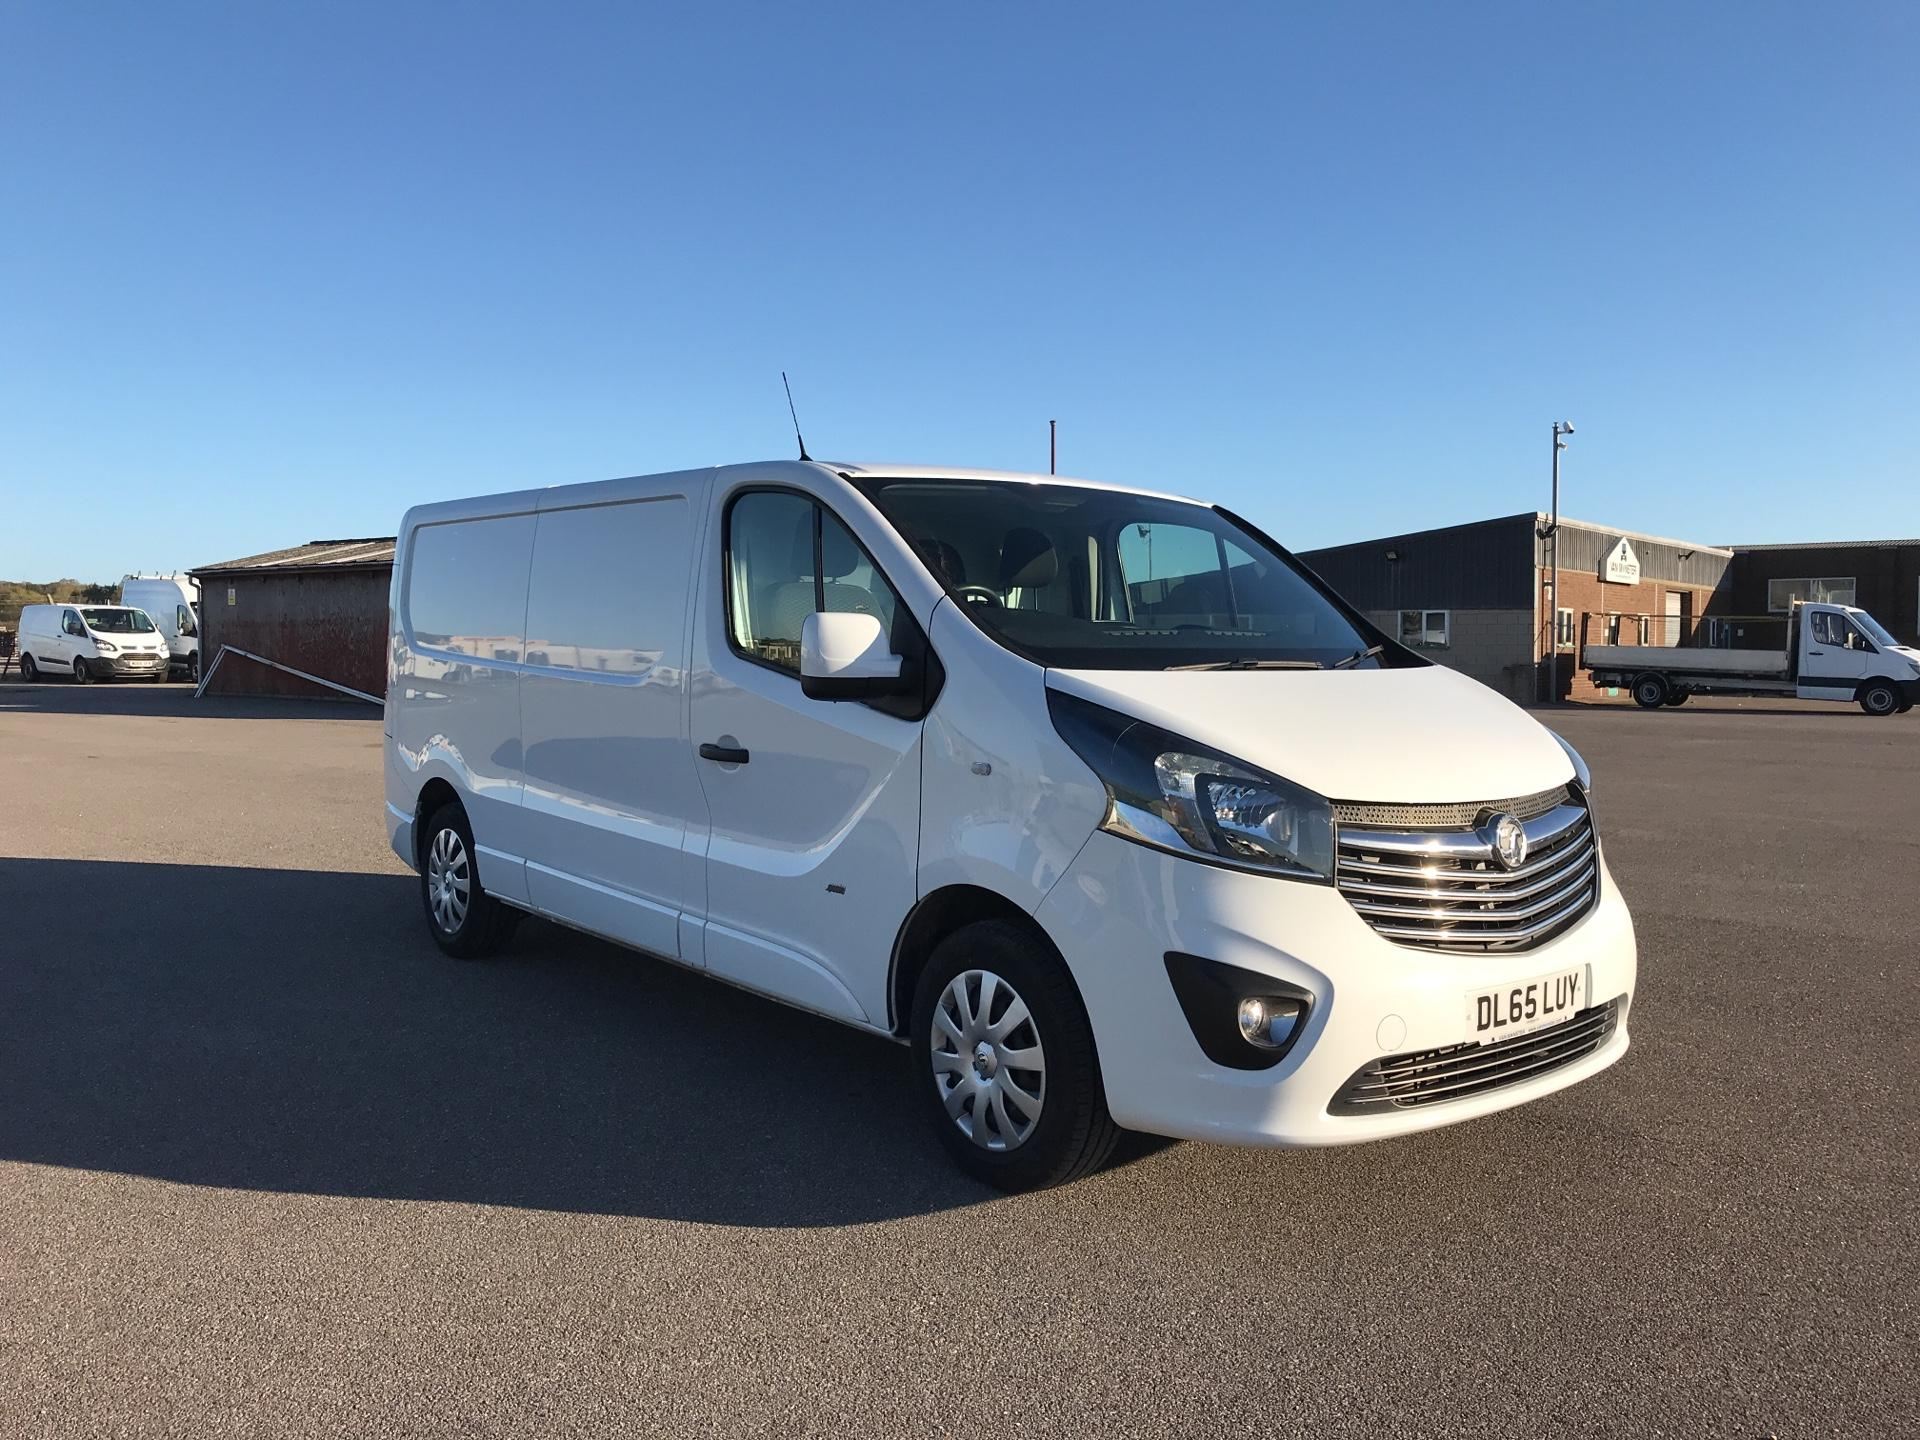 2015 Vauxhall Vivaro L2 H1 2900 1.6 115PS SPORTIVE EURO 5.  (DL65LUY)